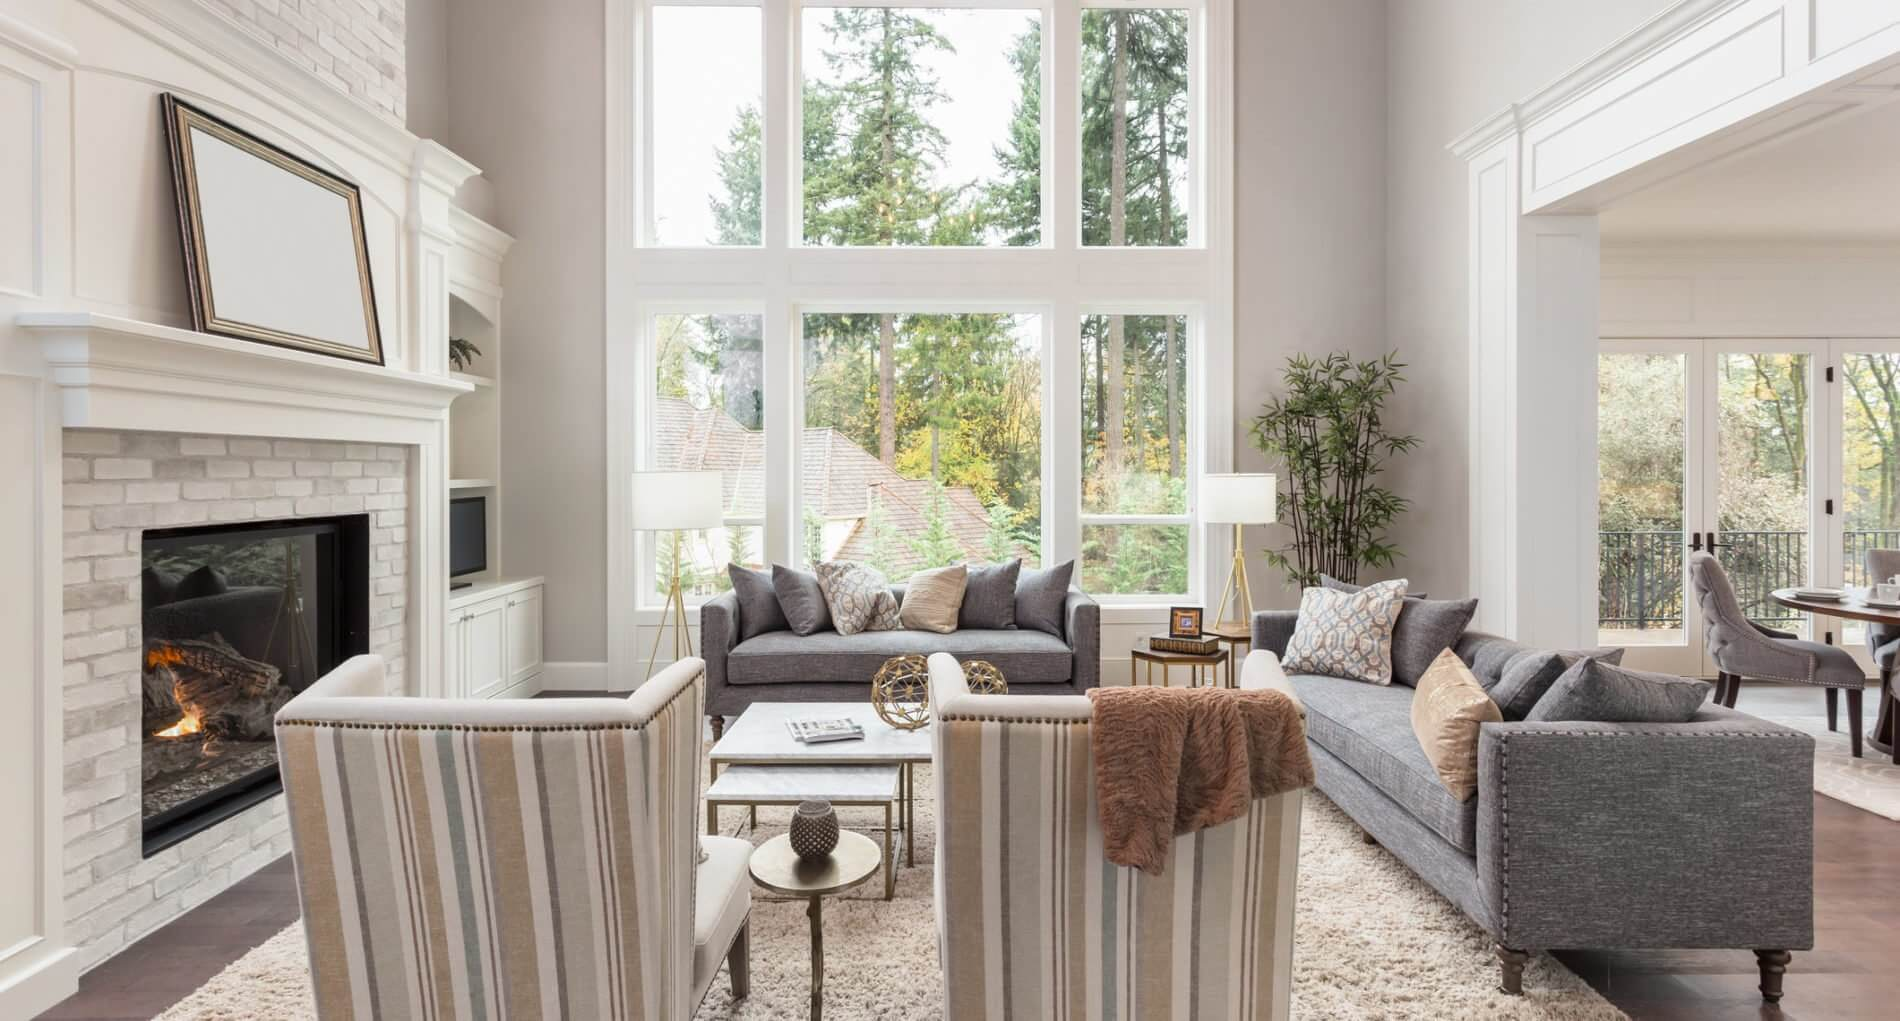 How to Keep Control of Your Budget During a Renovation